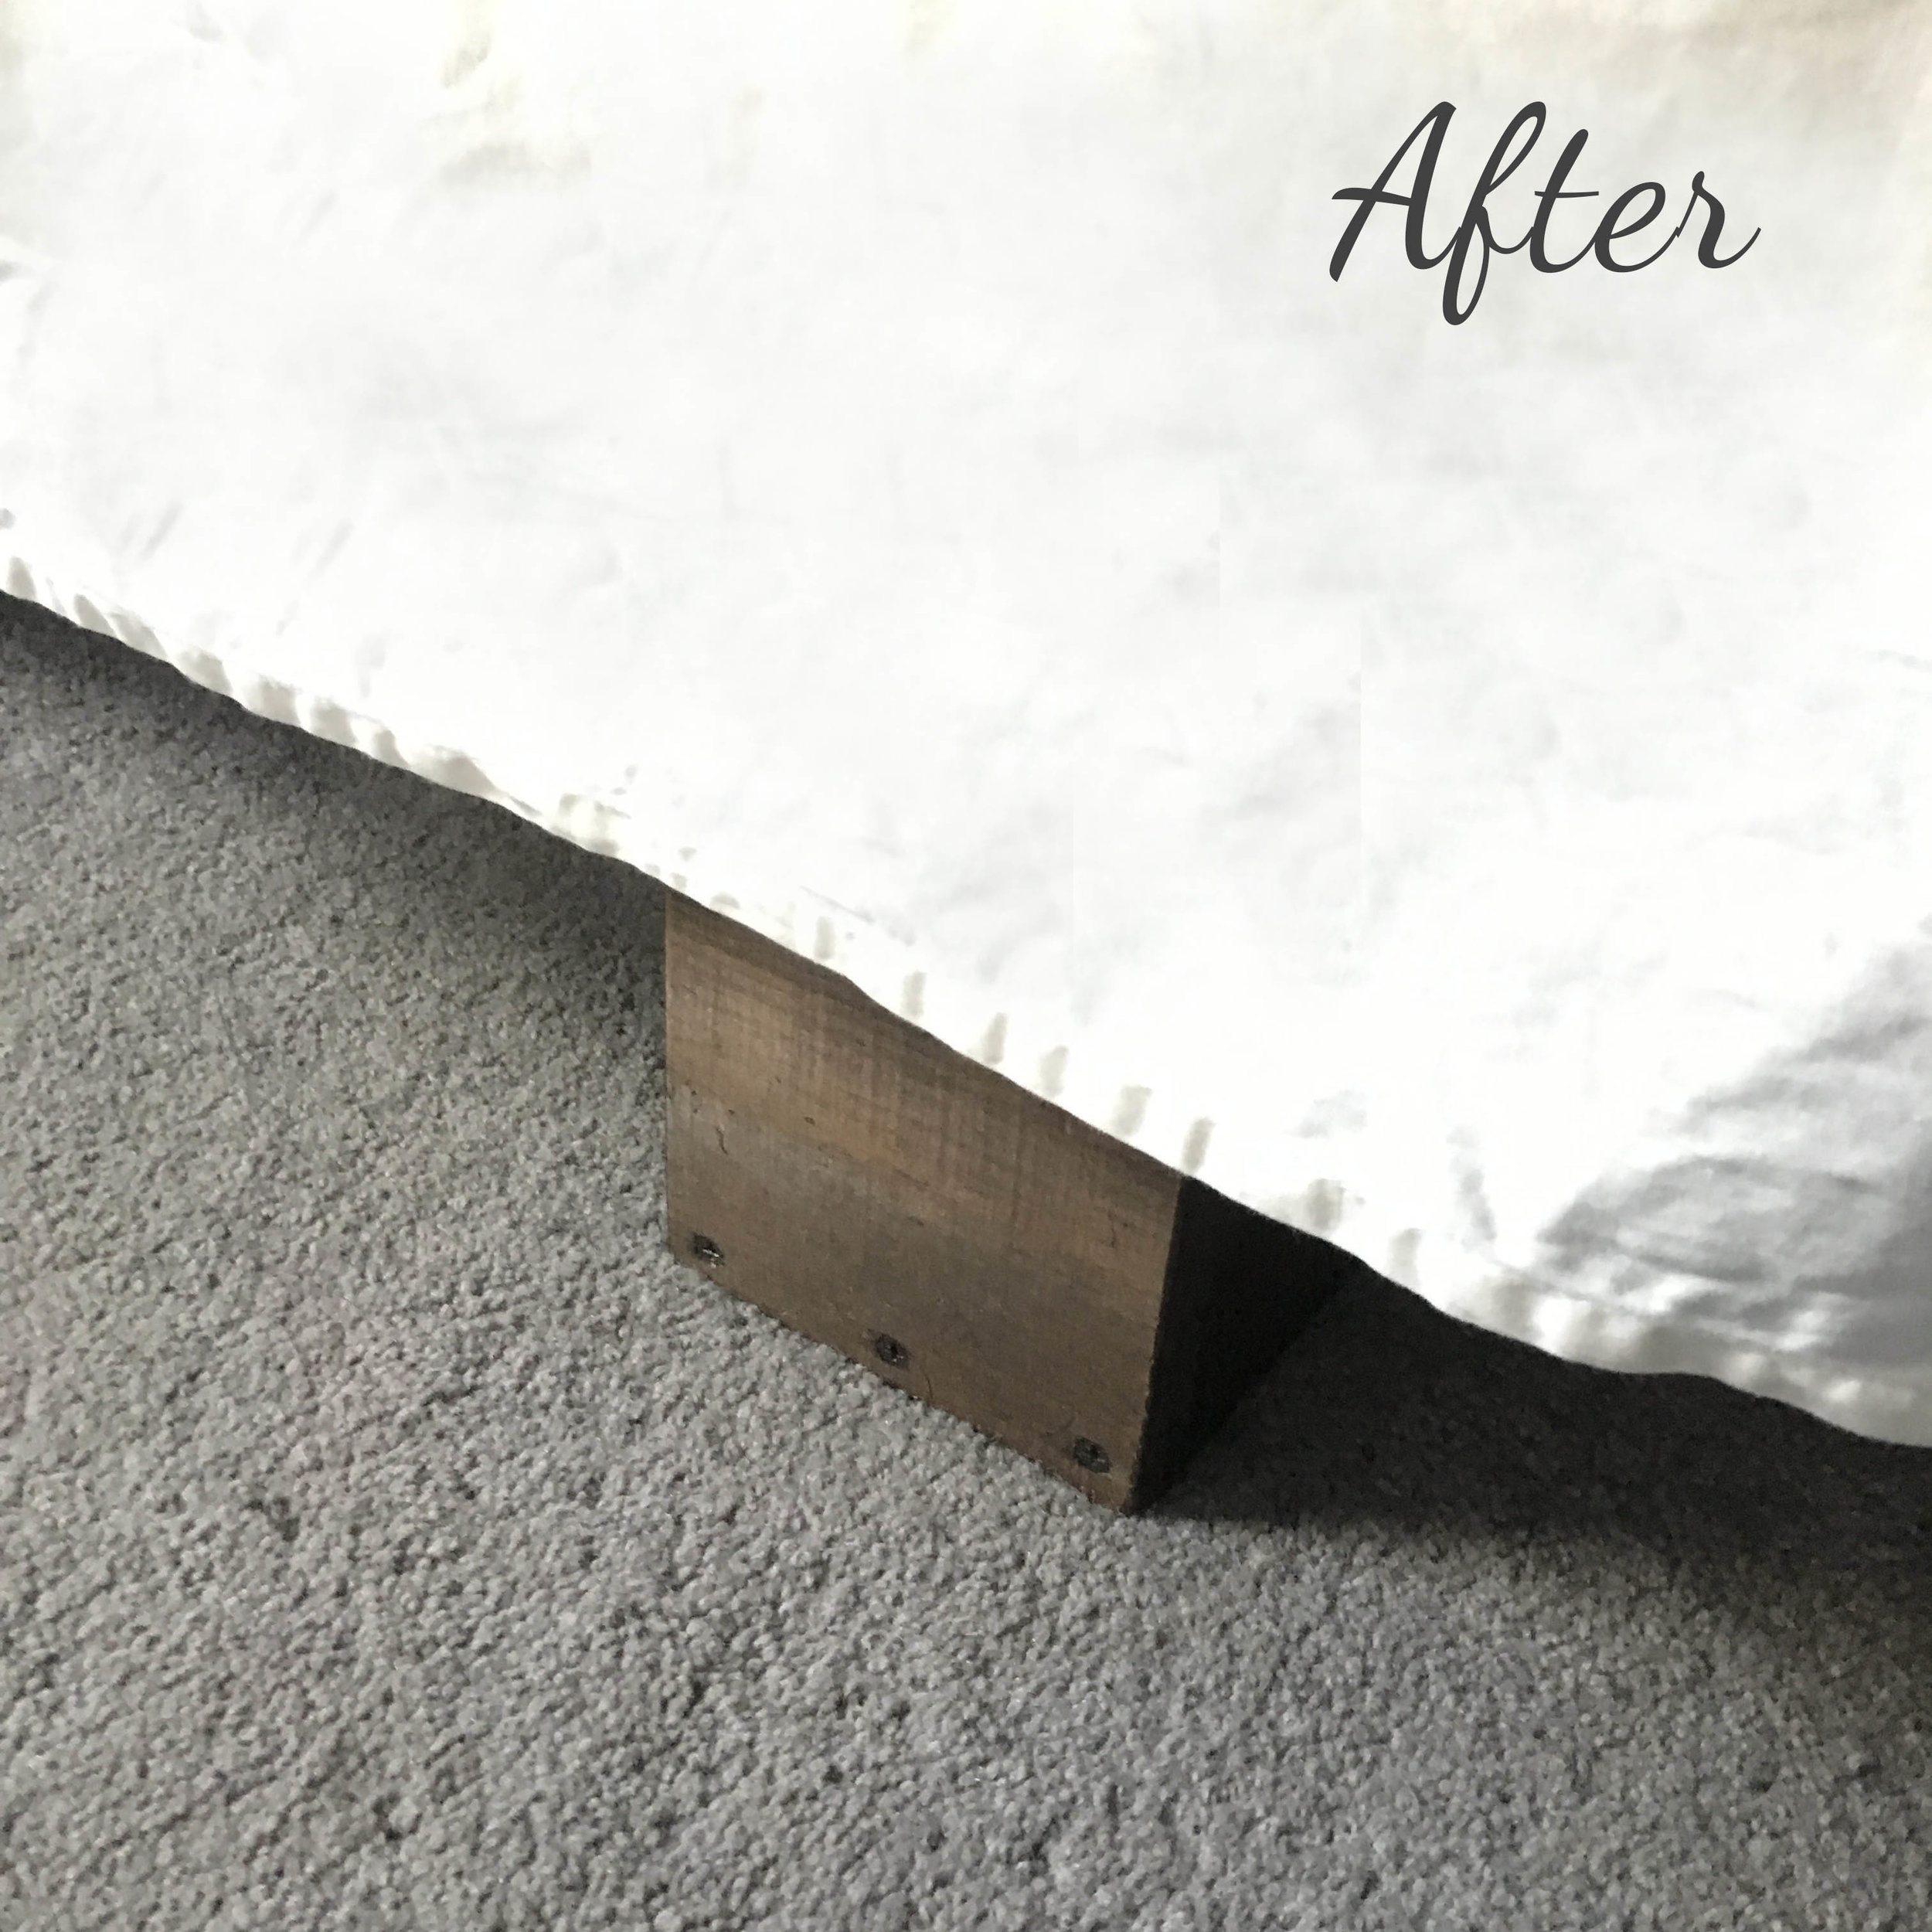 DIY Bed Risers - After!